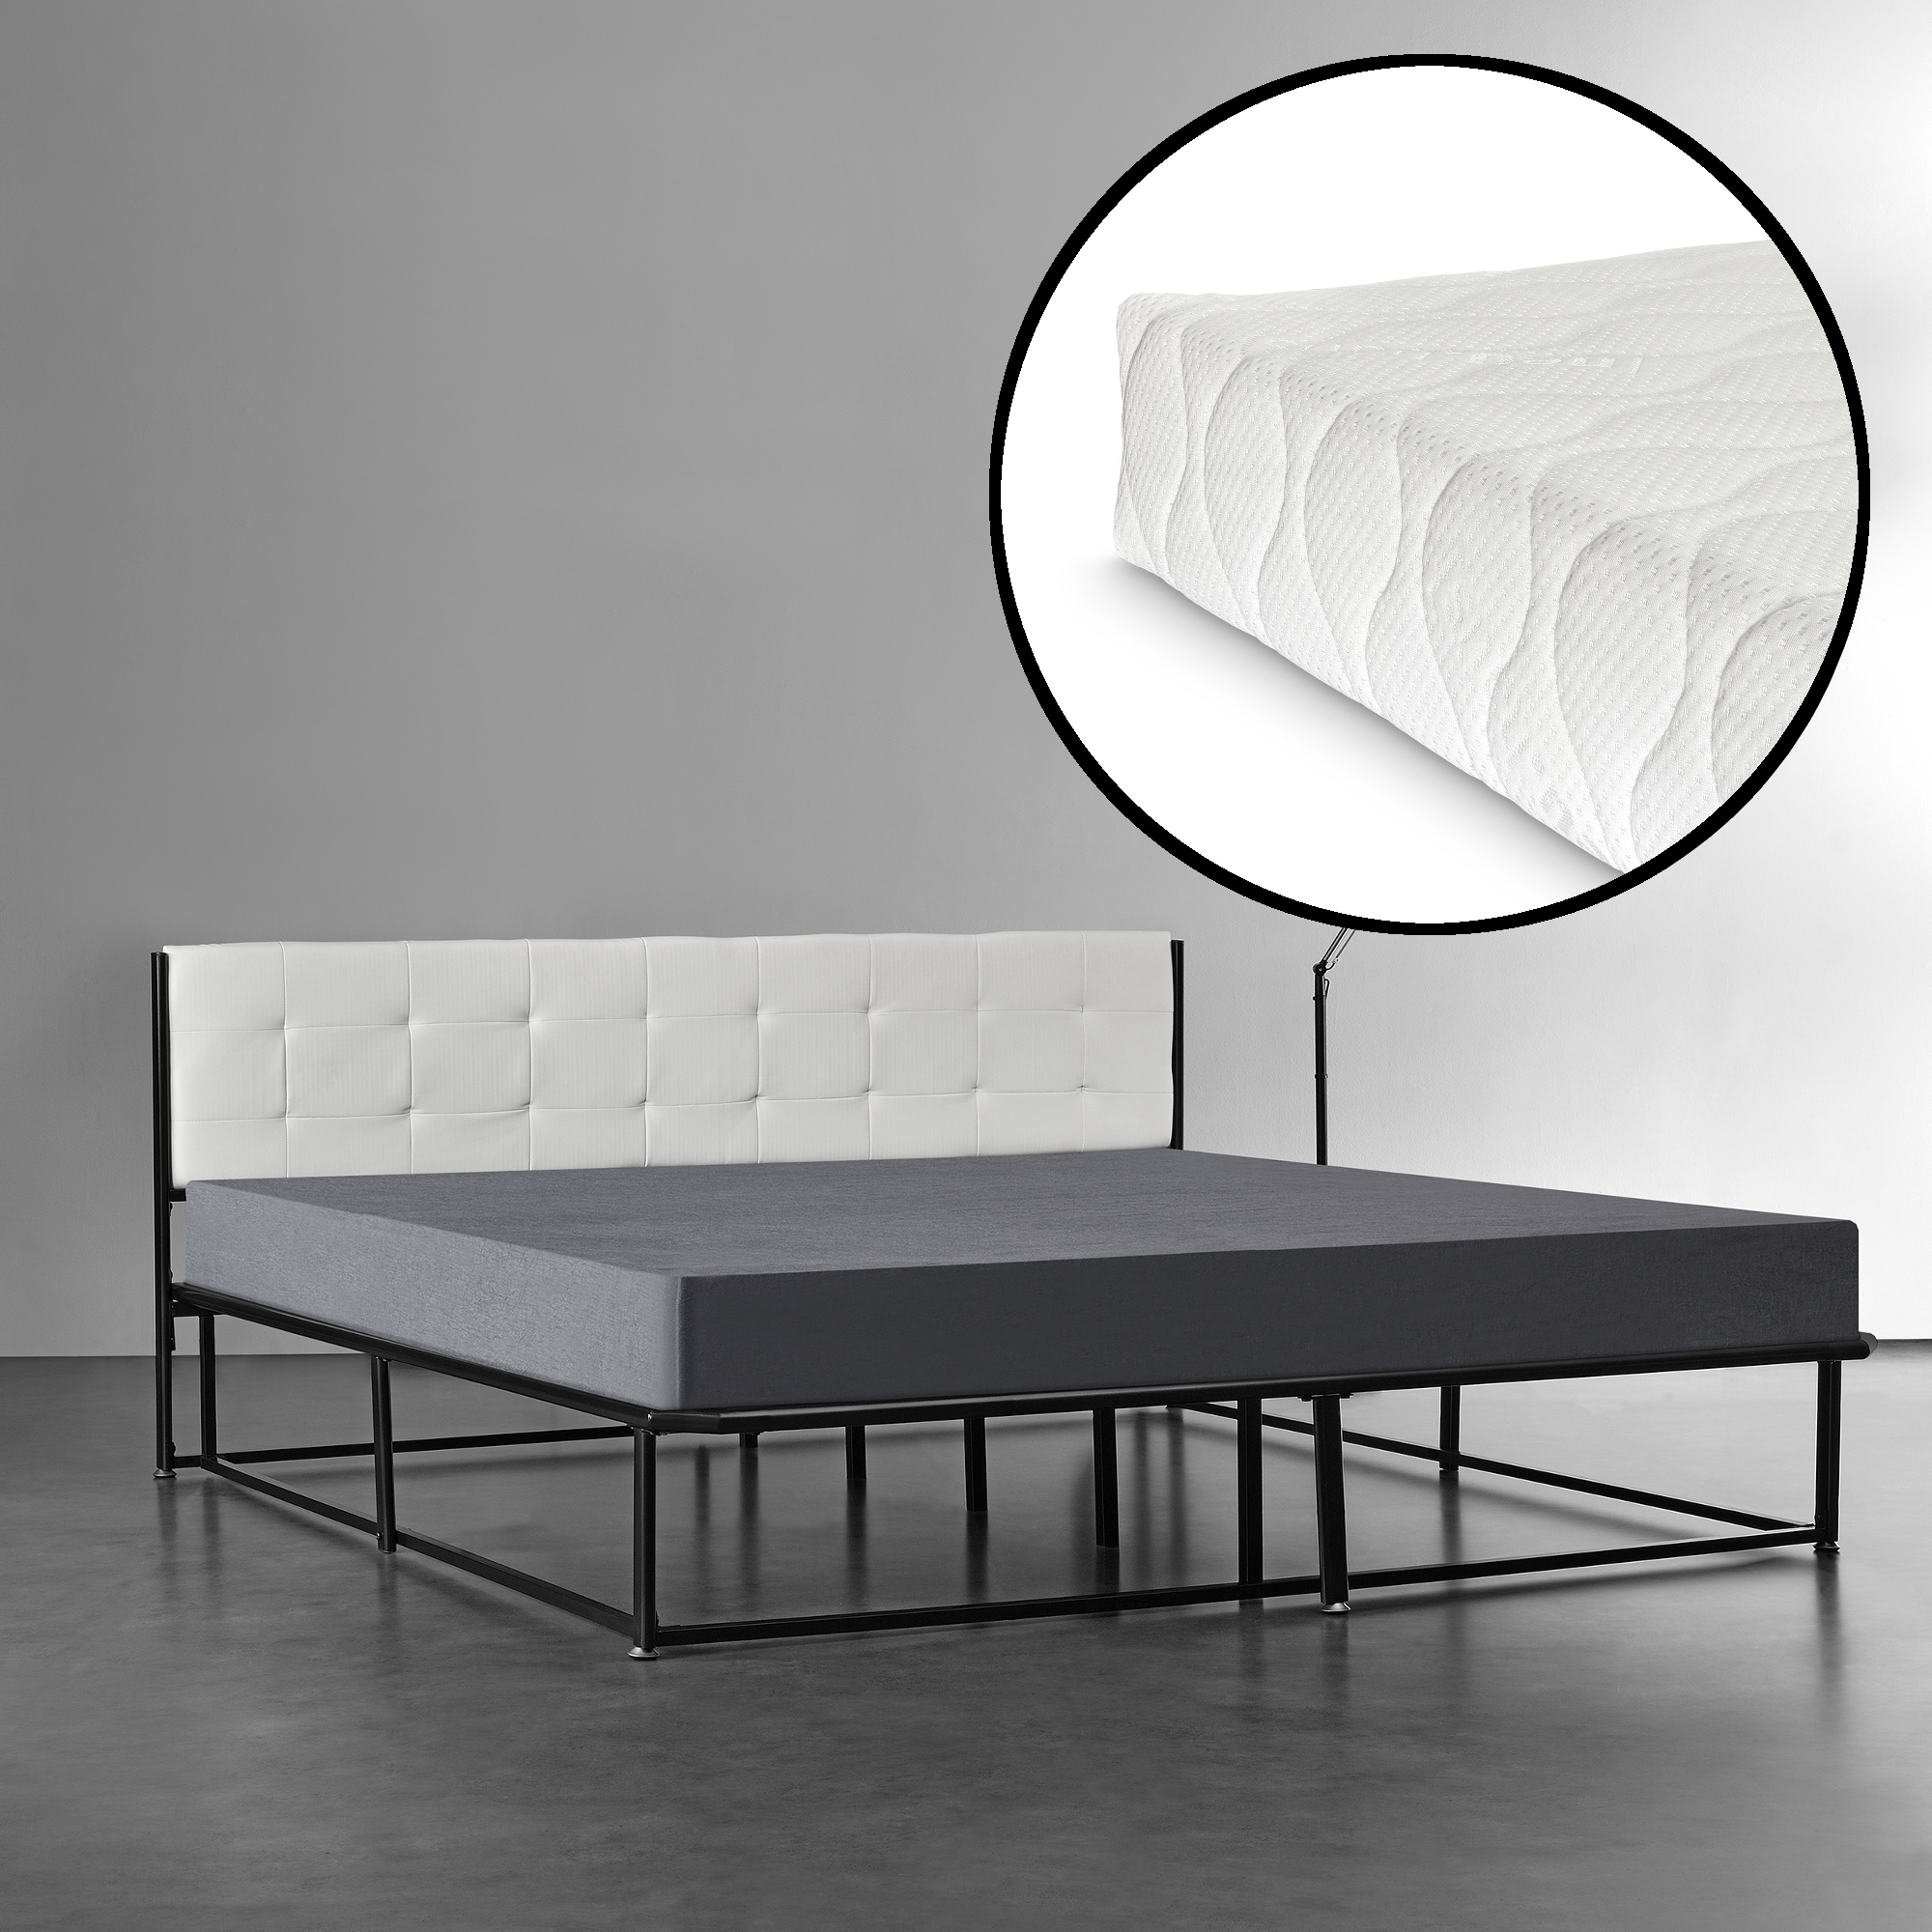 metallbett 180x200 schwarz mit matratze bett polsterbett kunstleder ebay. Black Bedroom Furniture Sets. Home Design Ideas